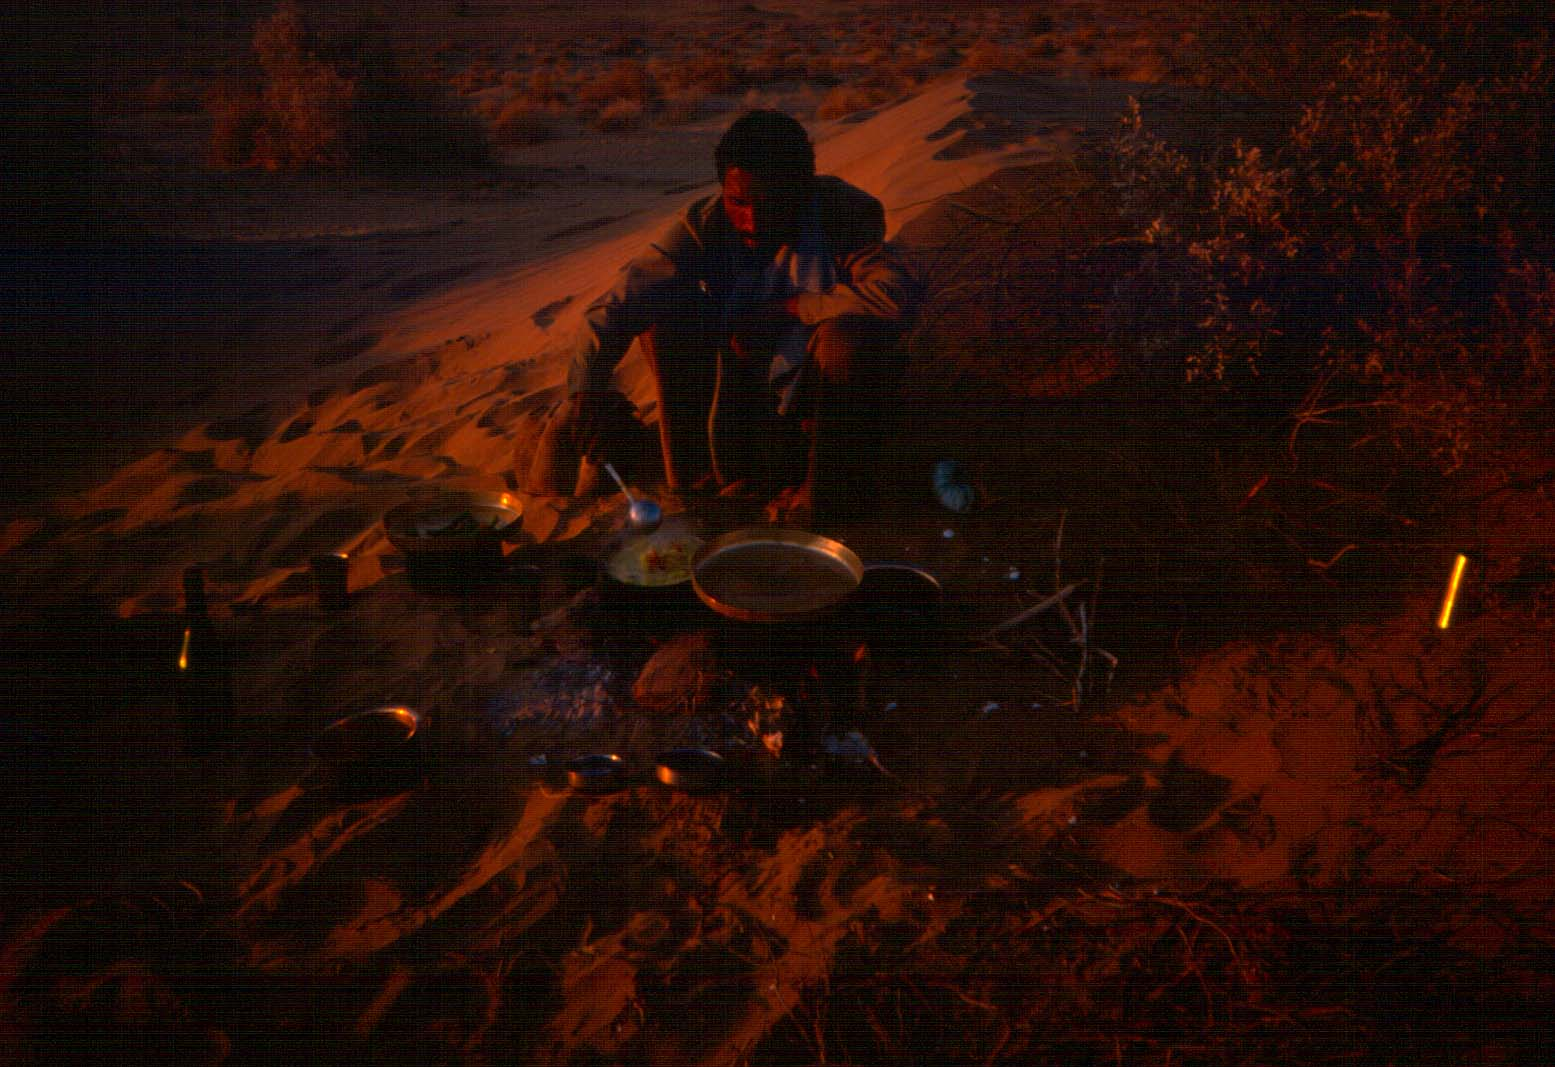 Desert Thar in India